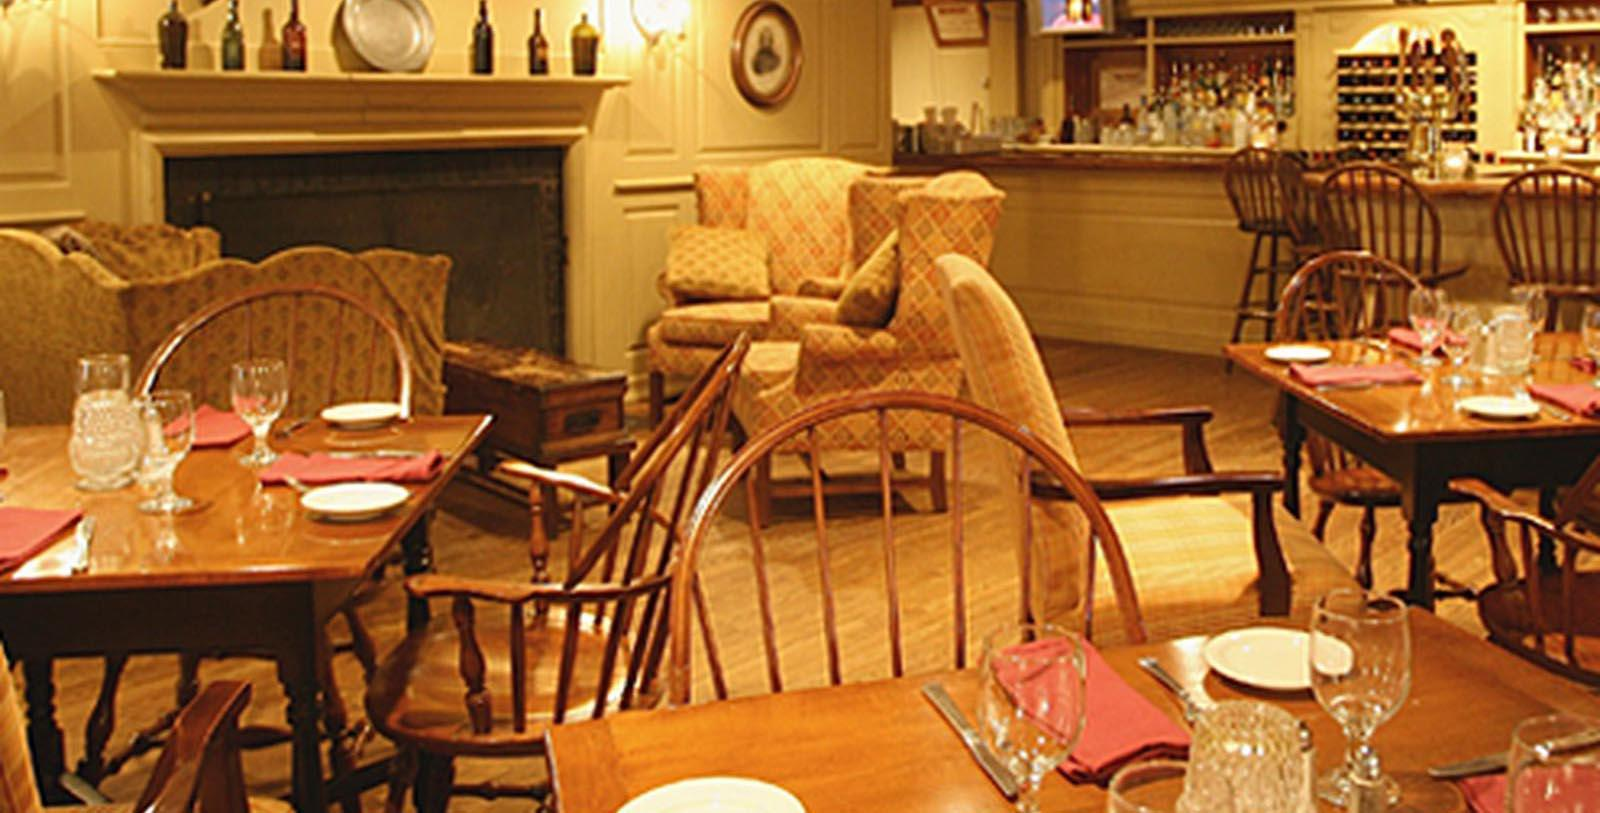 Image of Dining Area Publick House Historic Inn, 1771, Member of Historic Hotels of America, in Sturbridge, Massachusetts, Taste